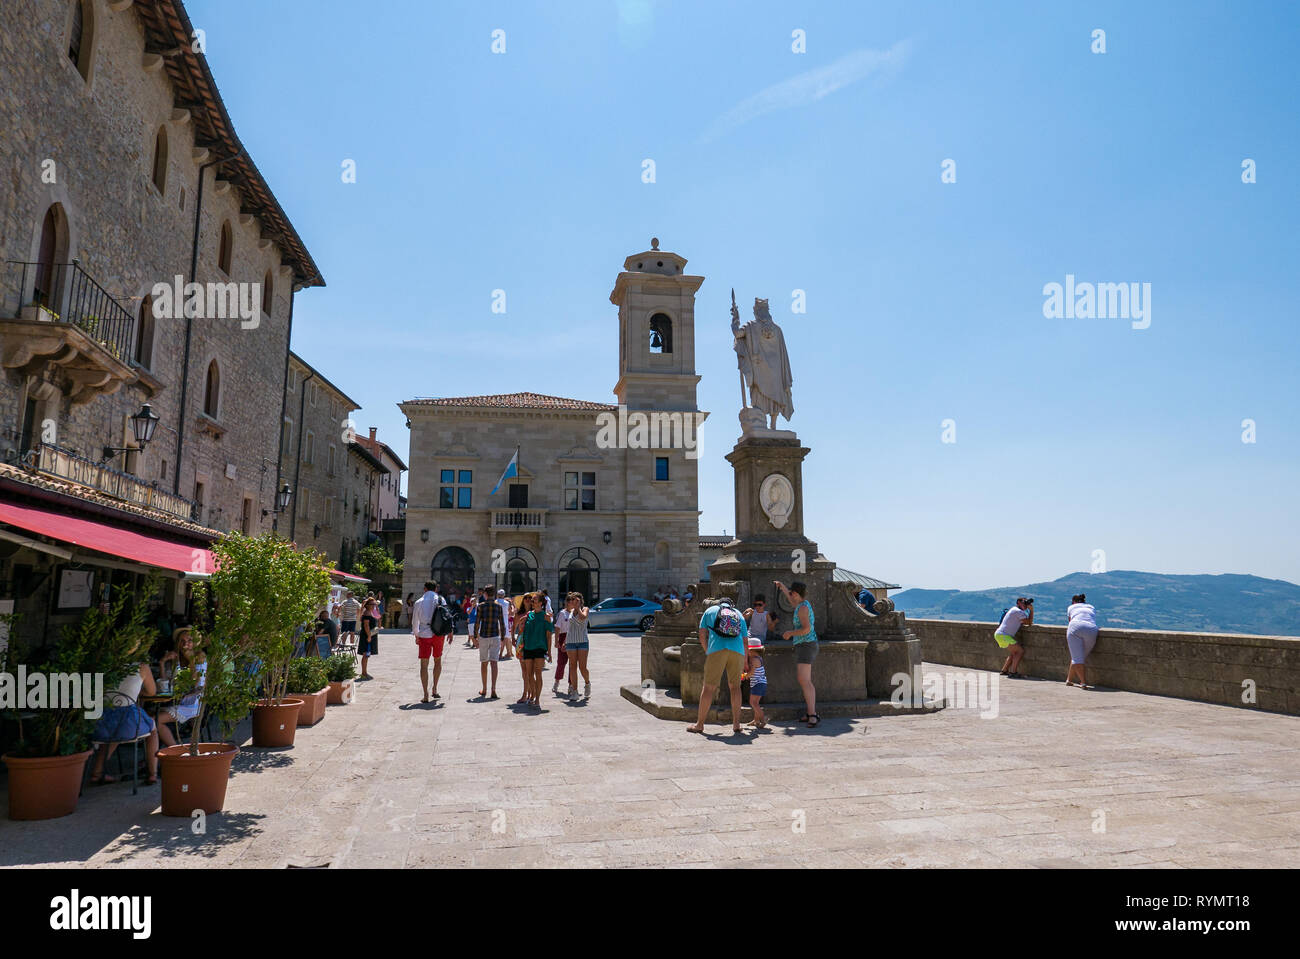 SAN MARINO, REPUBLIC OF SAN MARINO - 6 AUGUST 2018: Tourists stroll in  the  Piazza della Libertà in San Marino - Stock Image